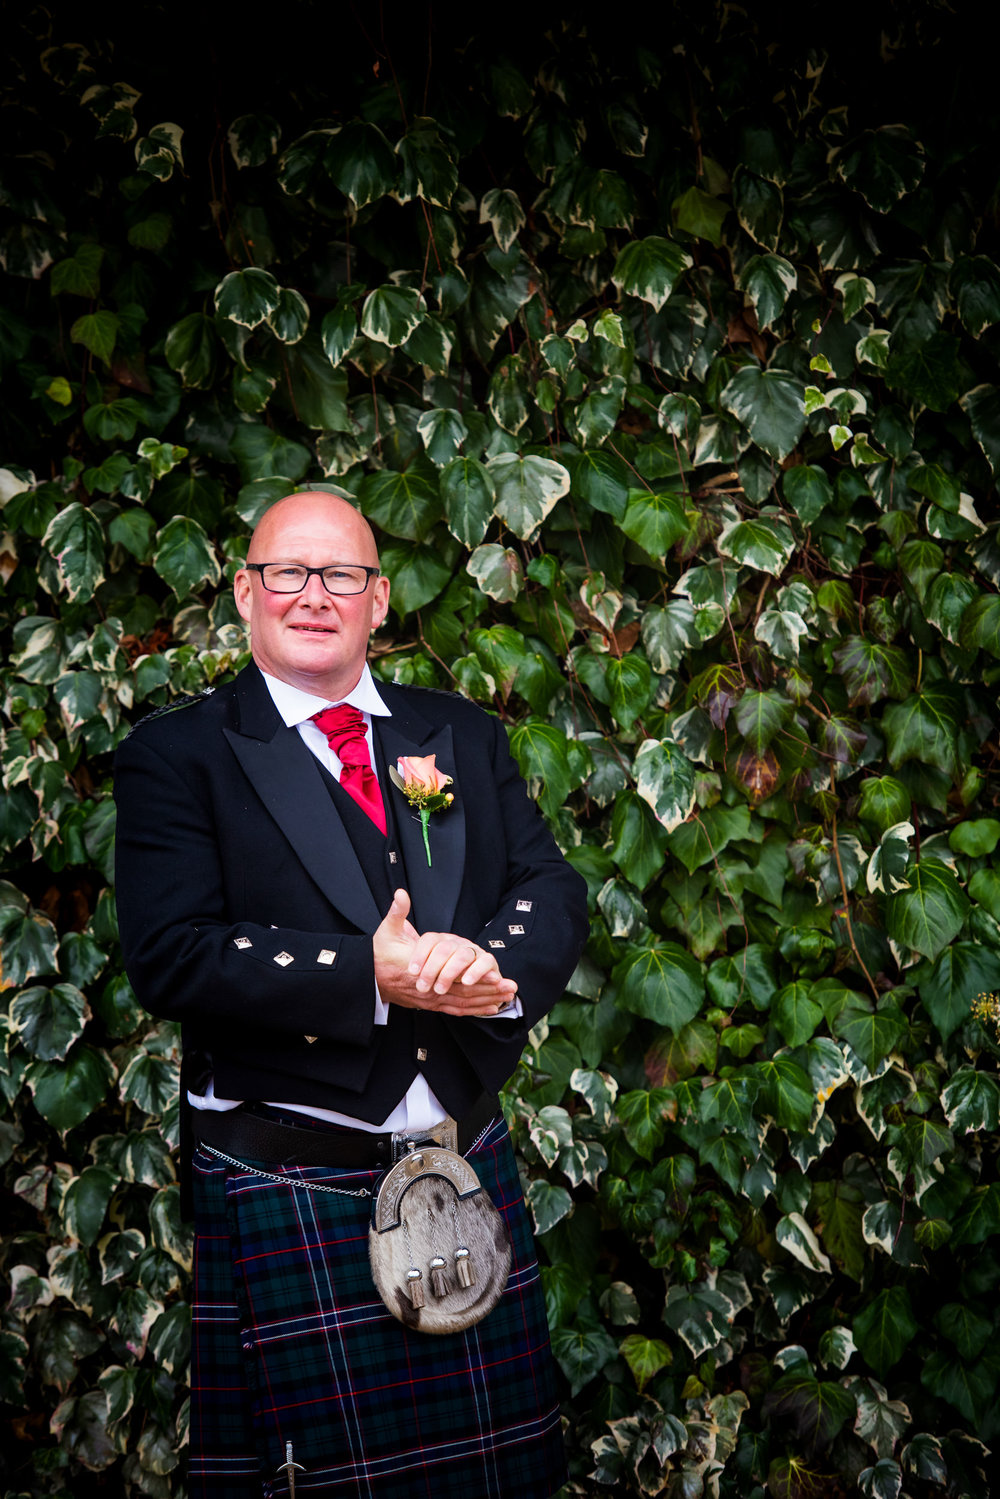 Groom stood in front of an Ivy wall